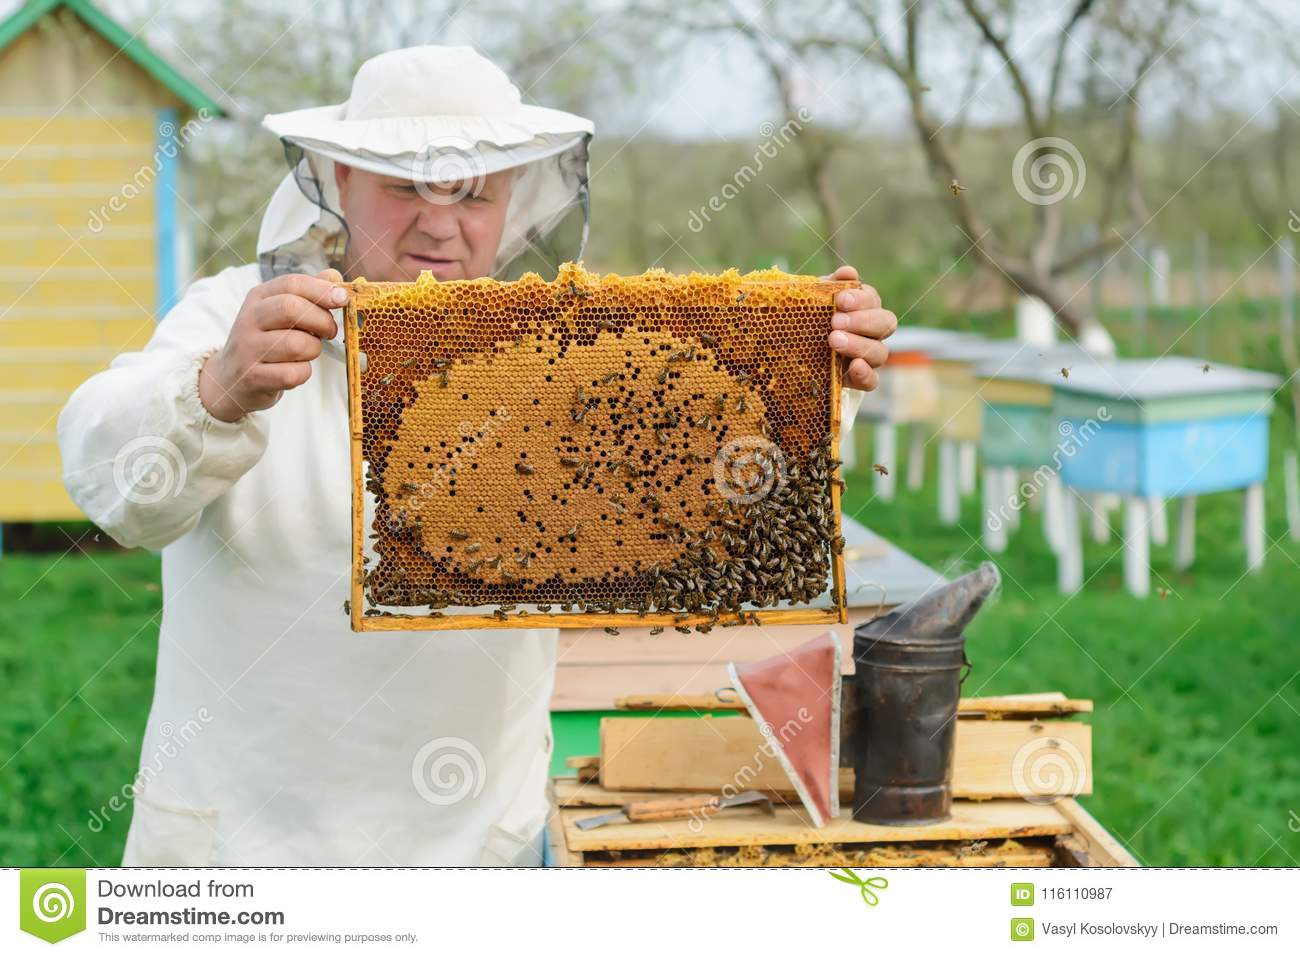 Beekeeper holding a honeycomb full of bees. Beekeeper in protective workwear inspecting honeycomb frame at apiary. Works